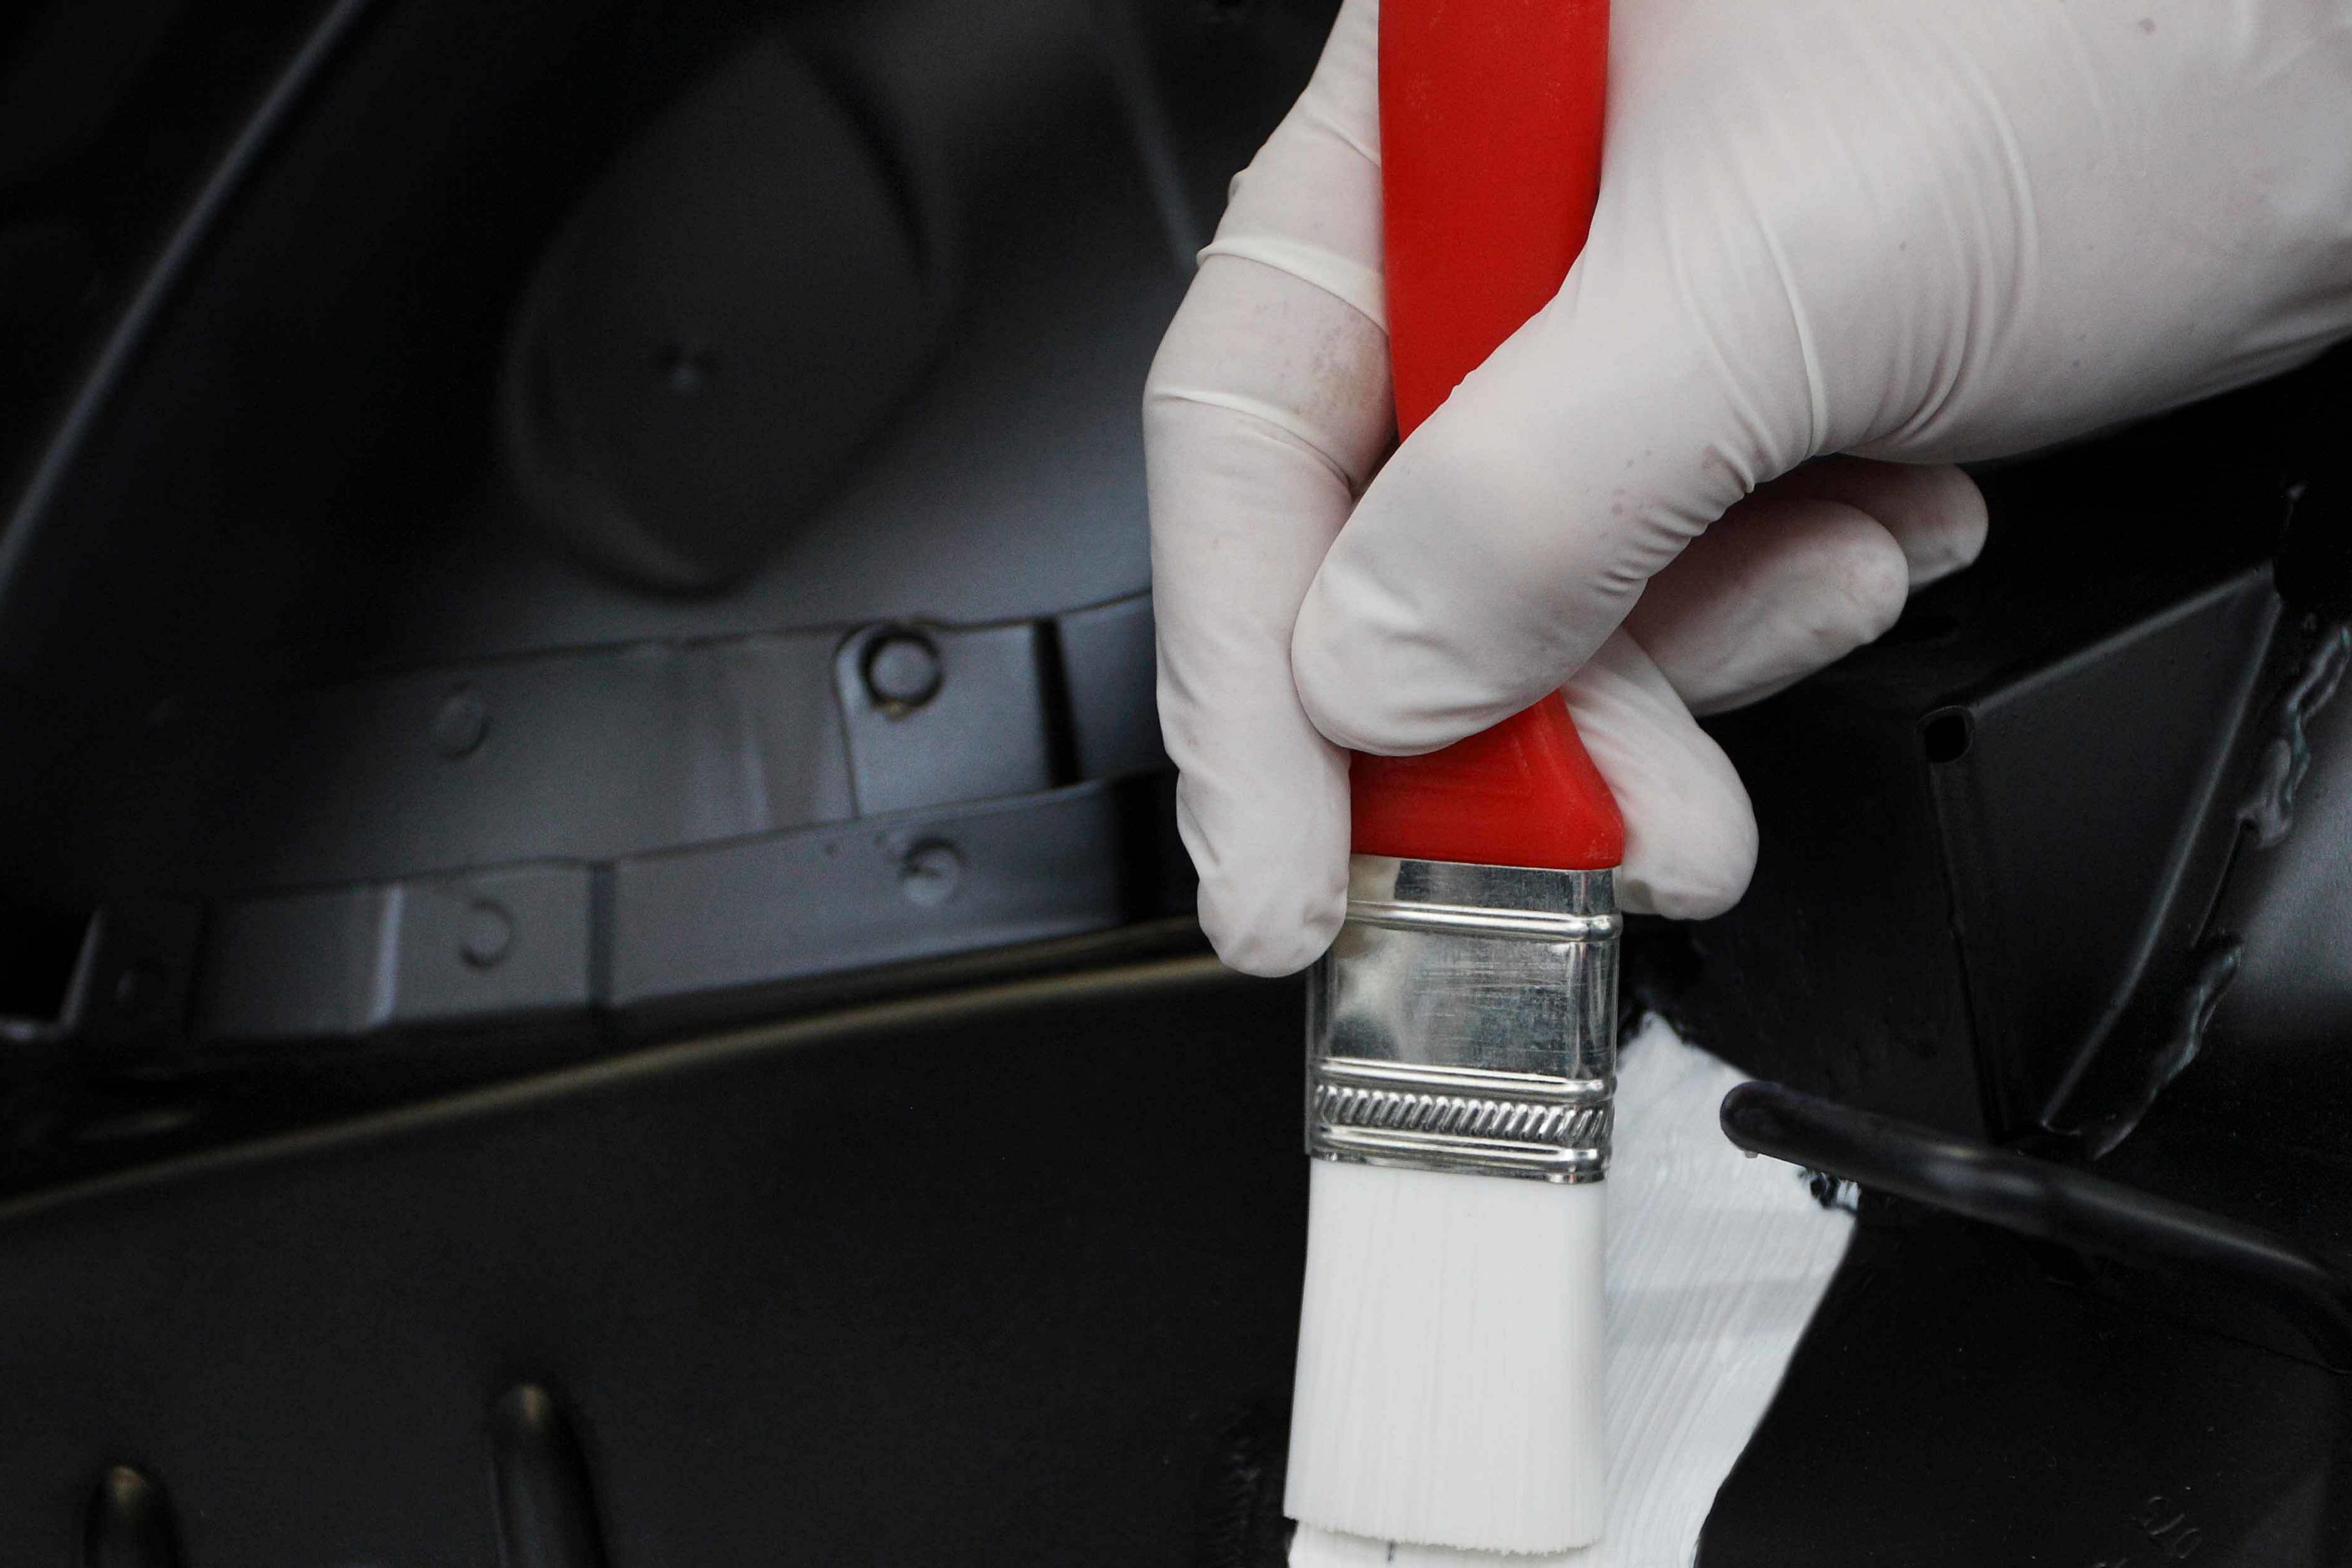 Sikaflex®-AT paint shop repair solution brushable seam application on vehicle